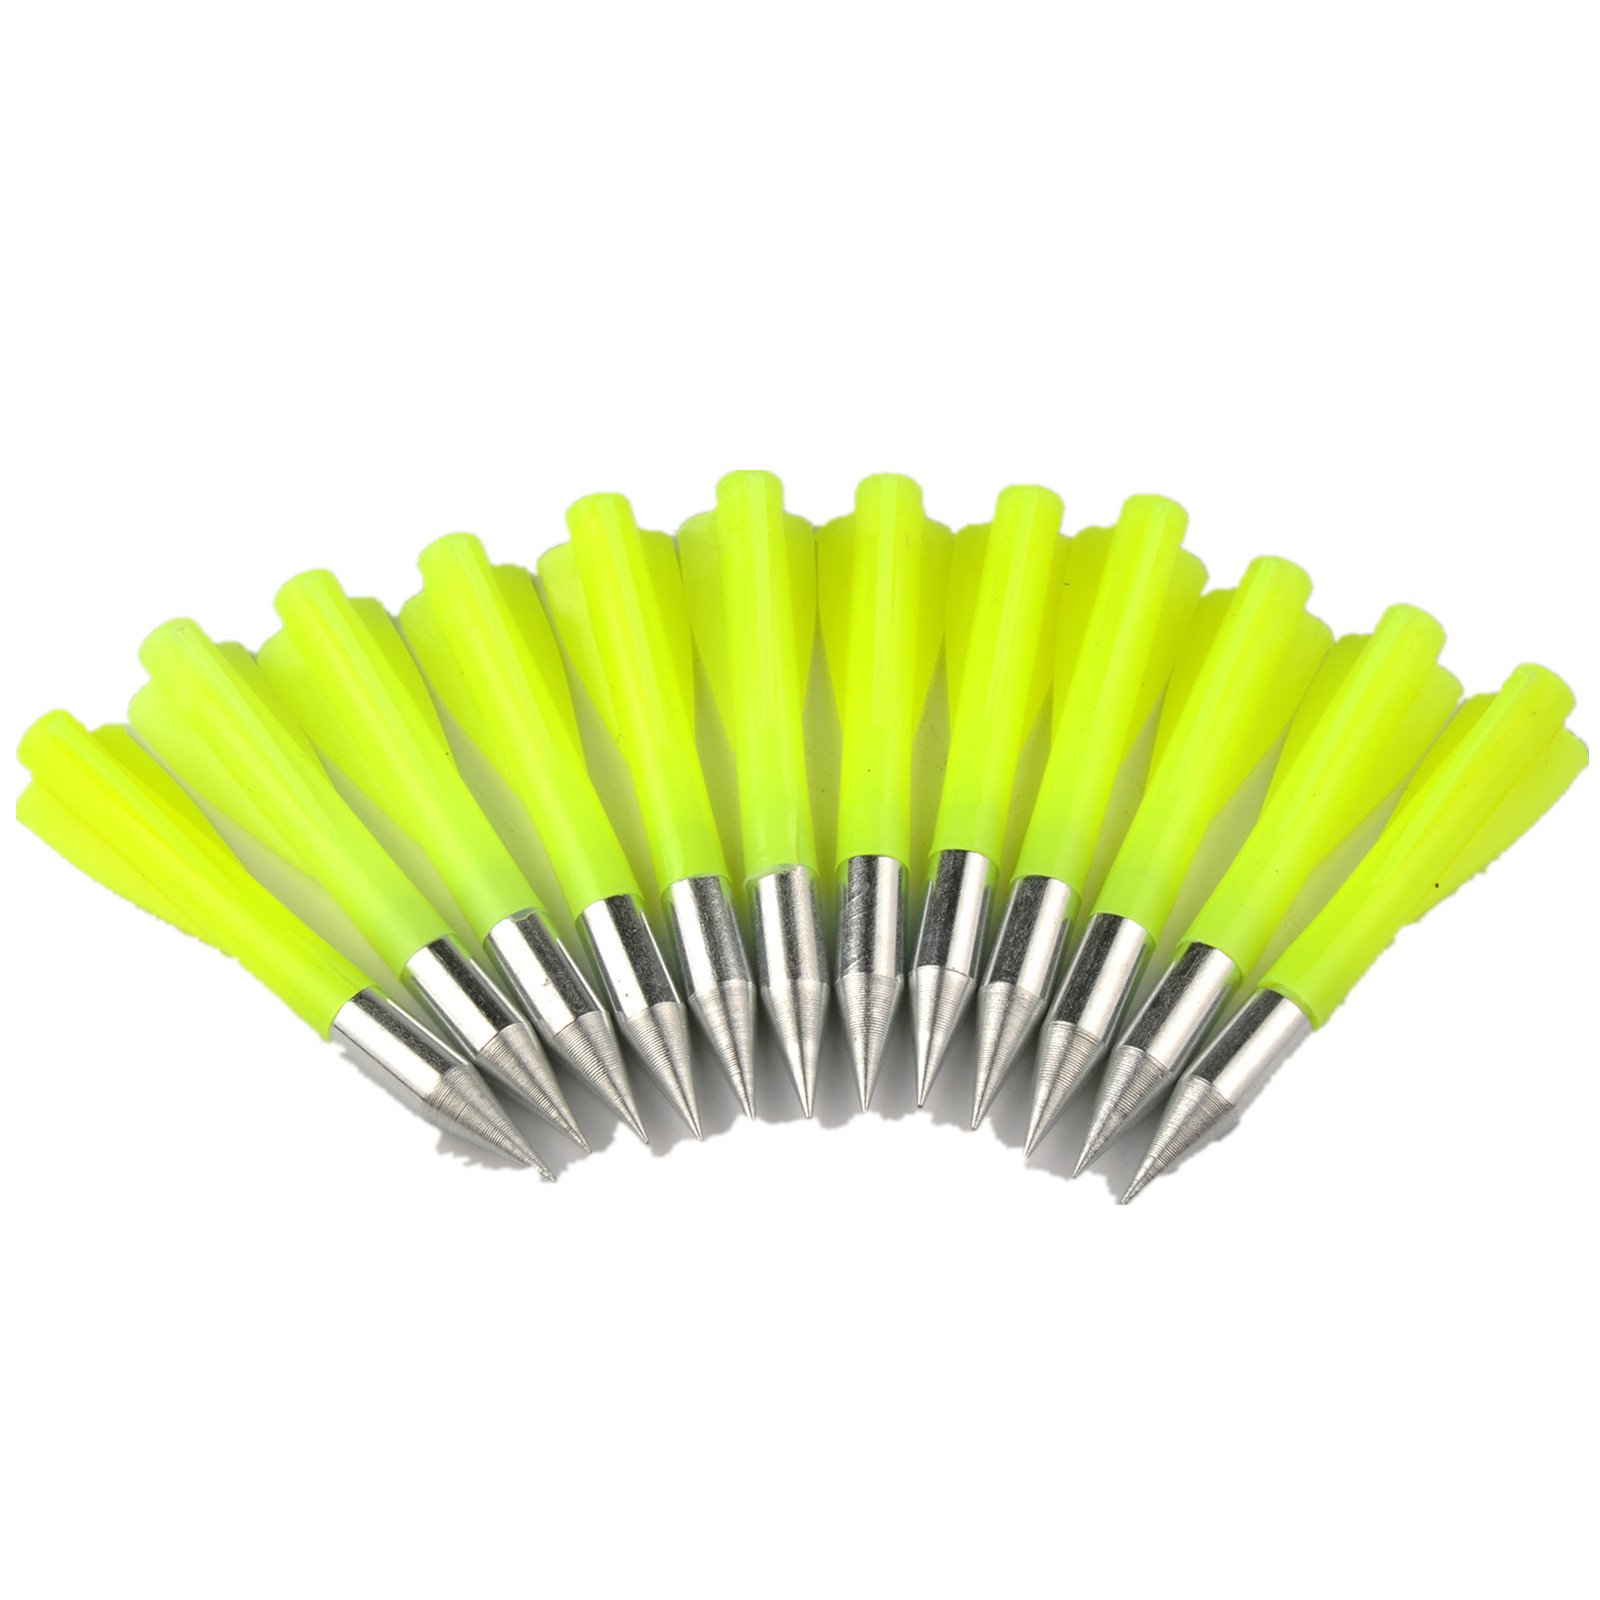 Ruixunte 6.6'' New Metal Crossbow Arrowsbolts for FishingTtargeting Arrows Pack of 12 (Yellow)